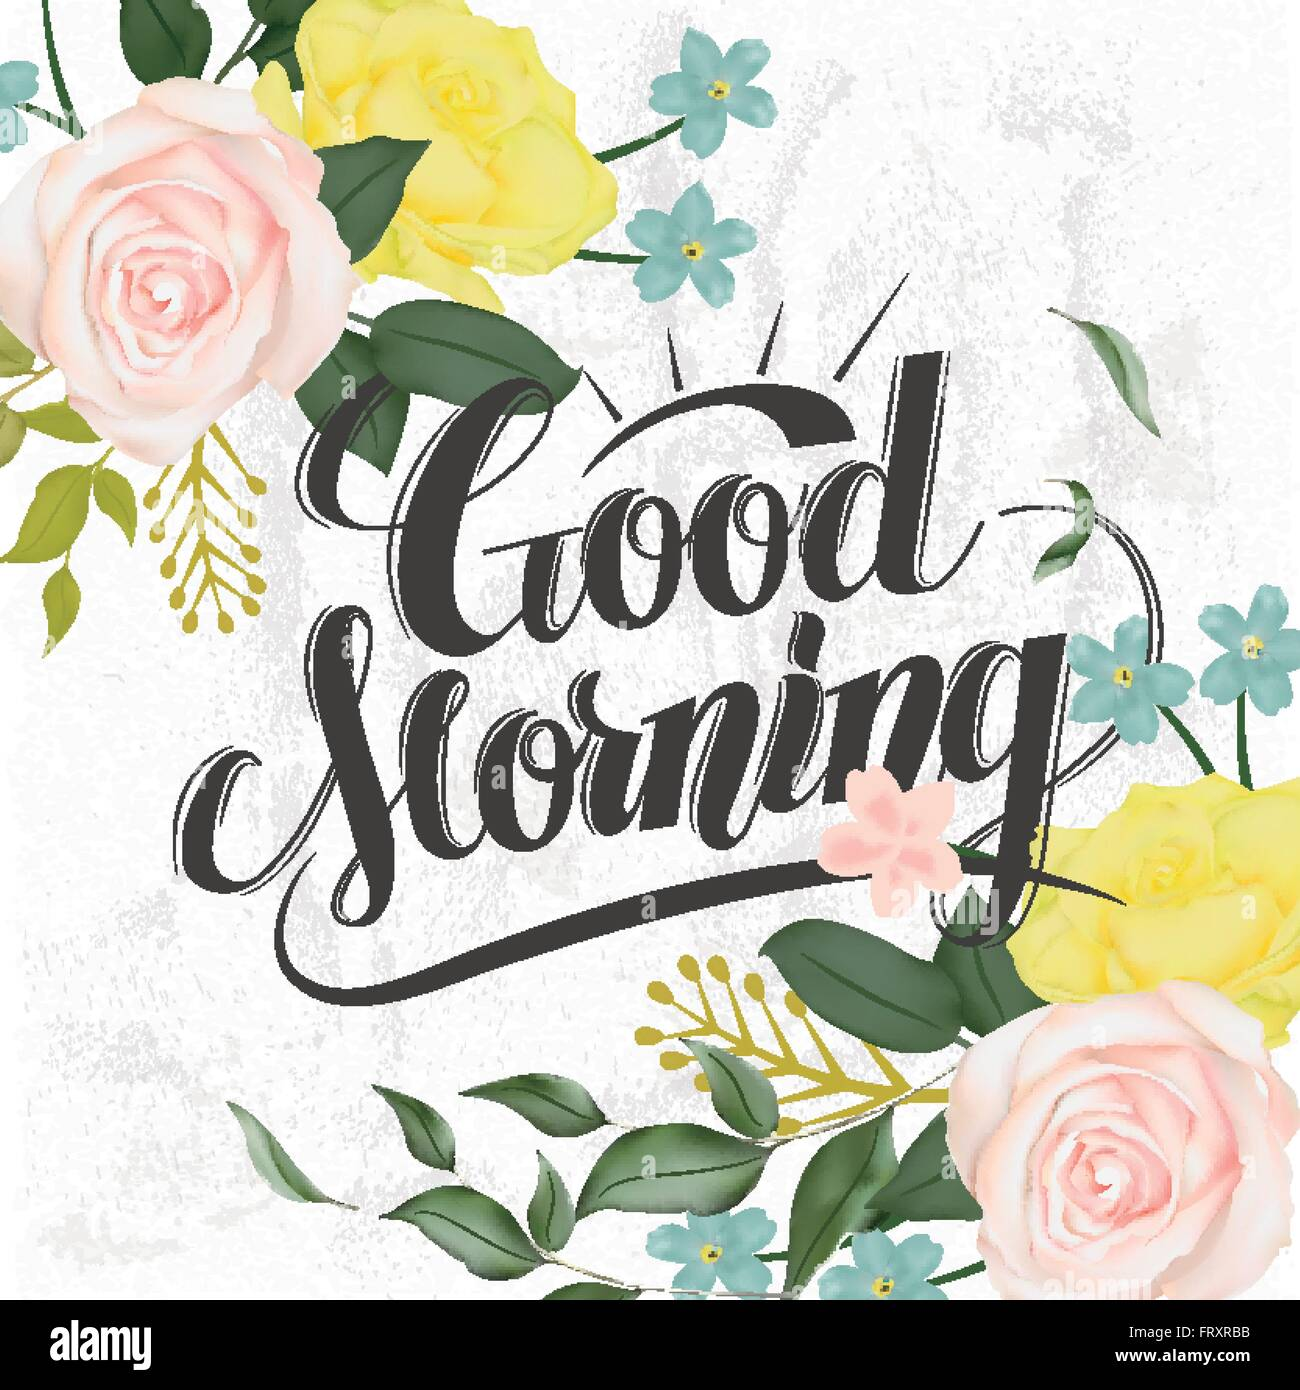 Poster design elements - Stock Vector Attractive Good Morning Calligraphy And Poster Design With Floral Elements